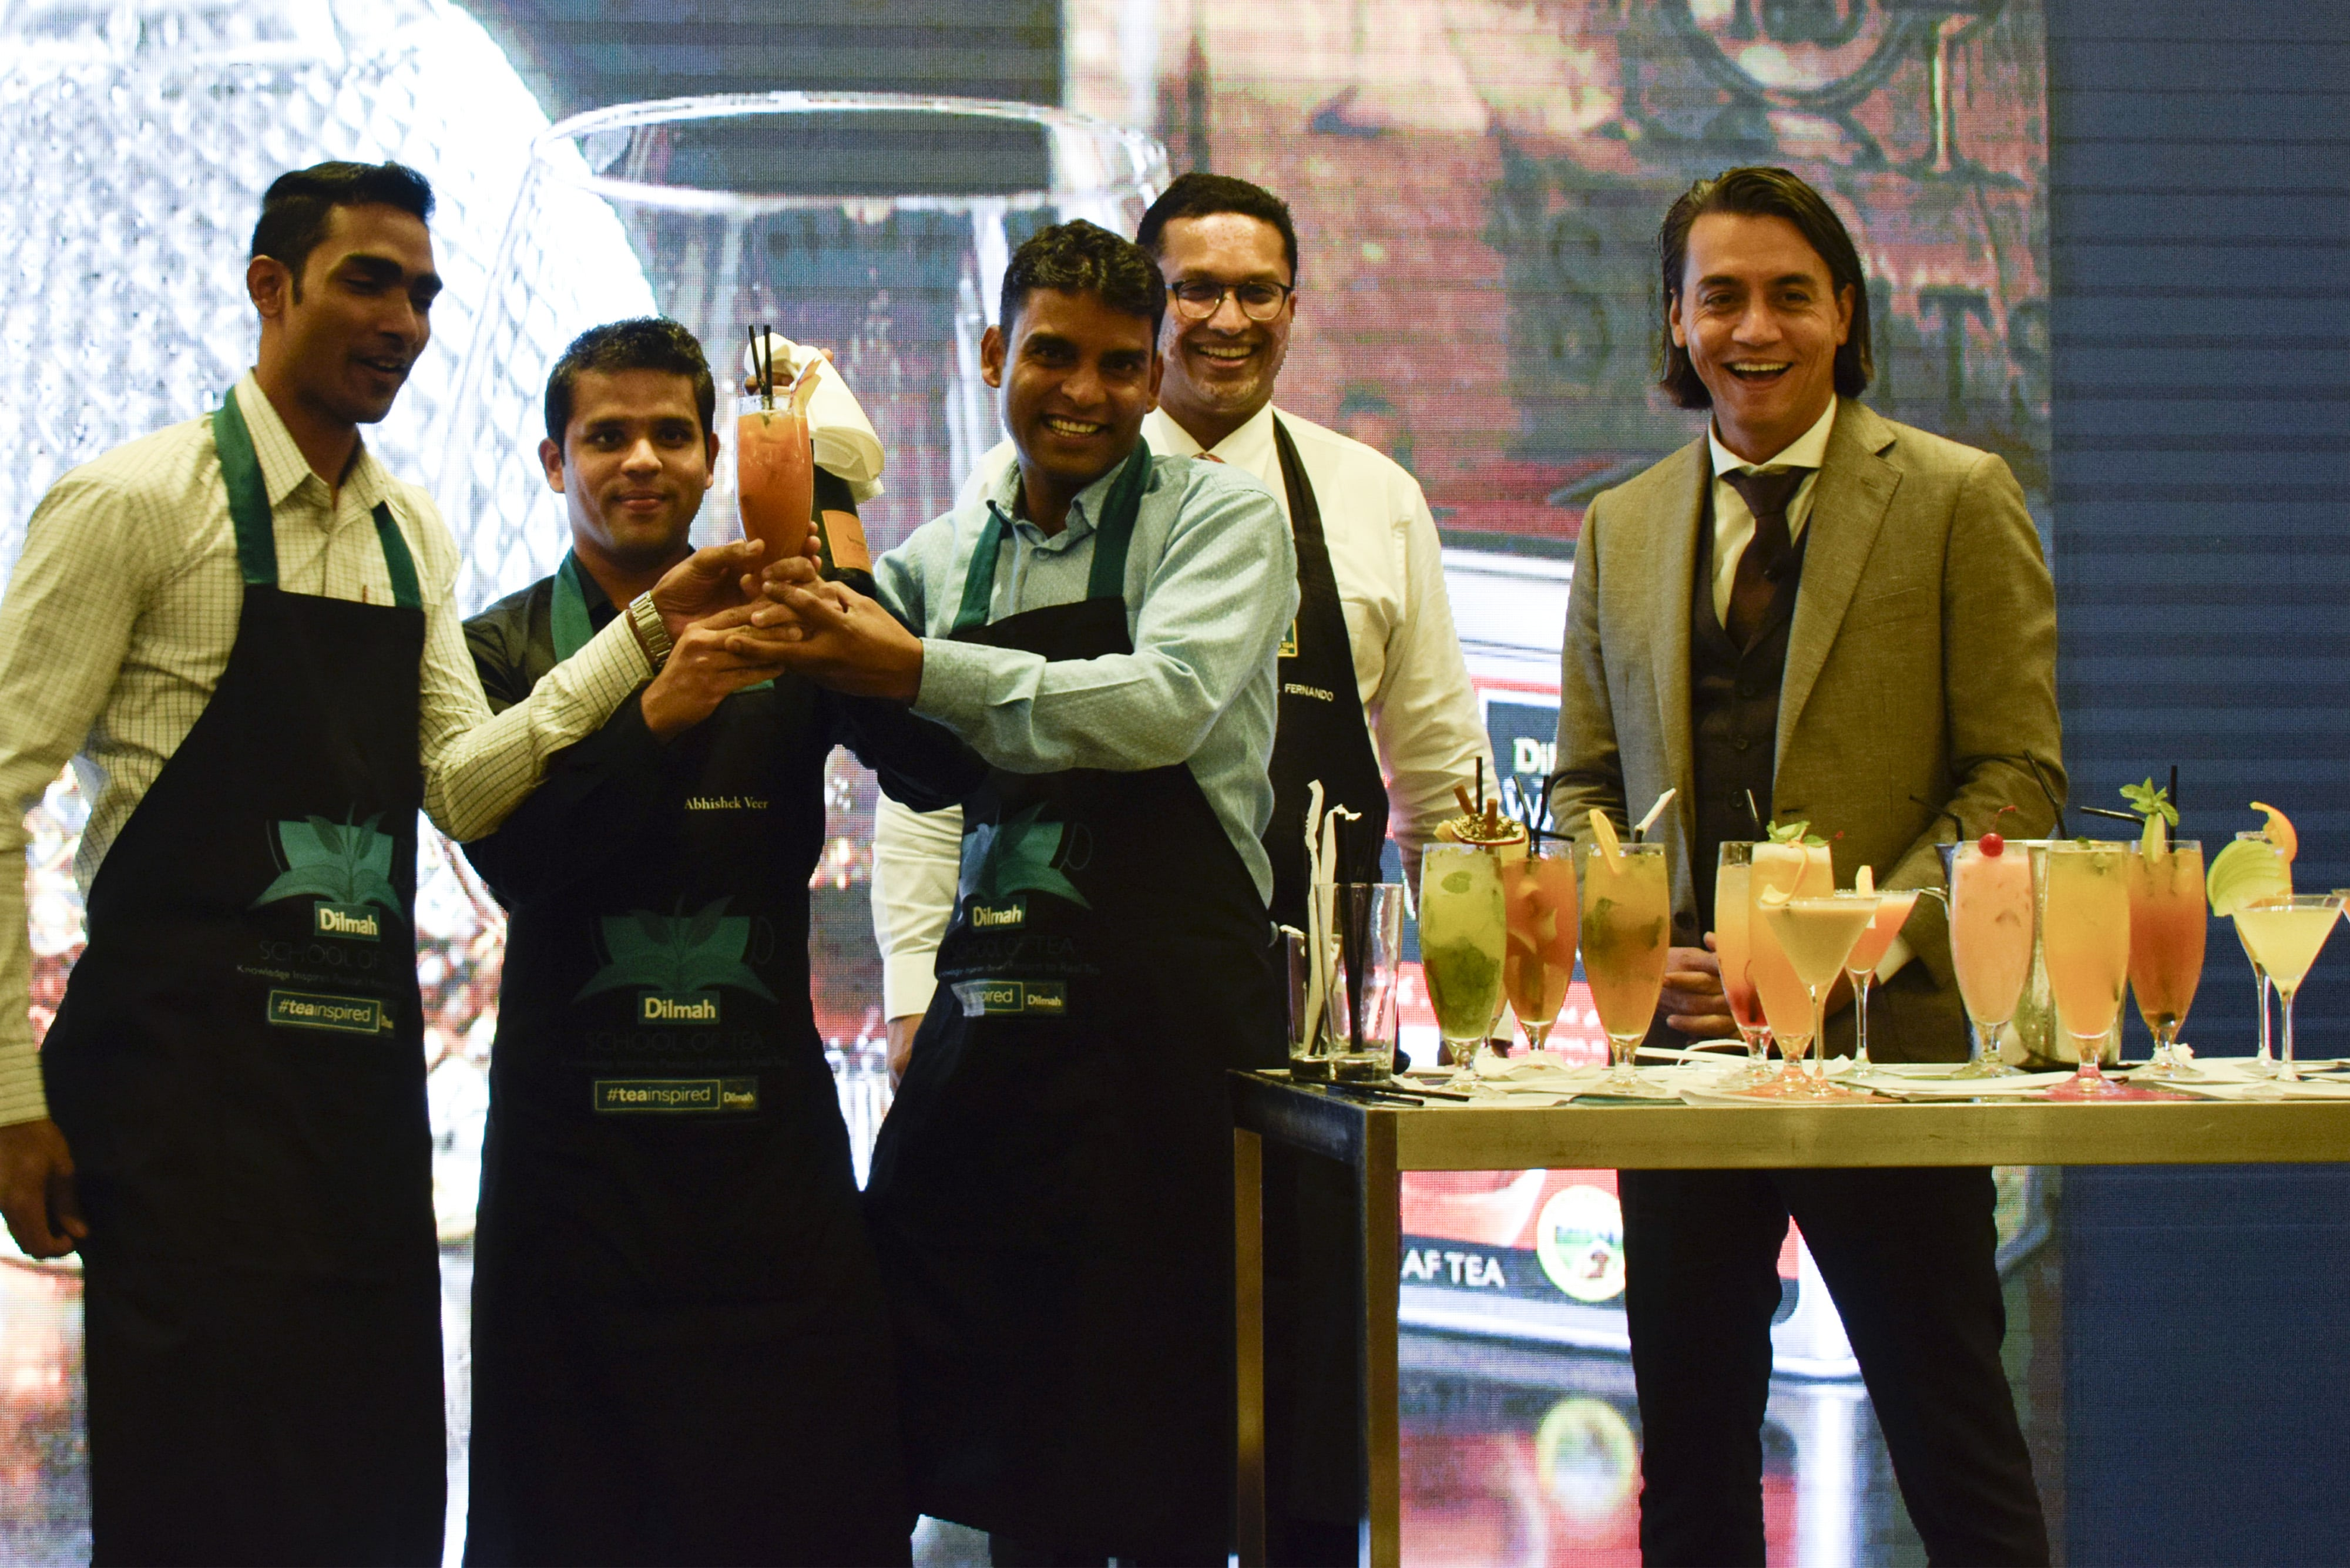 The winner of the best tea inspired drink receiving their prize